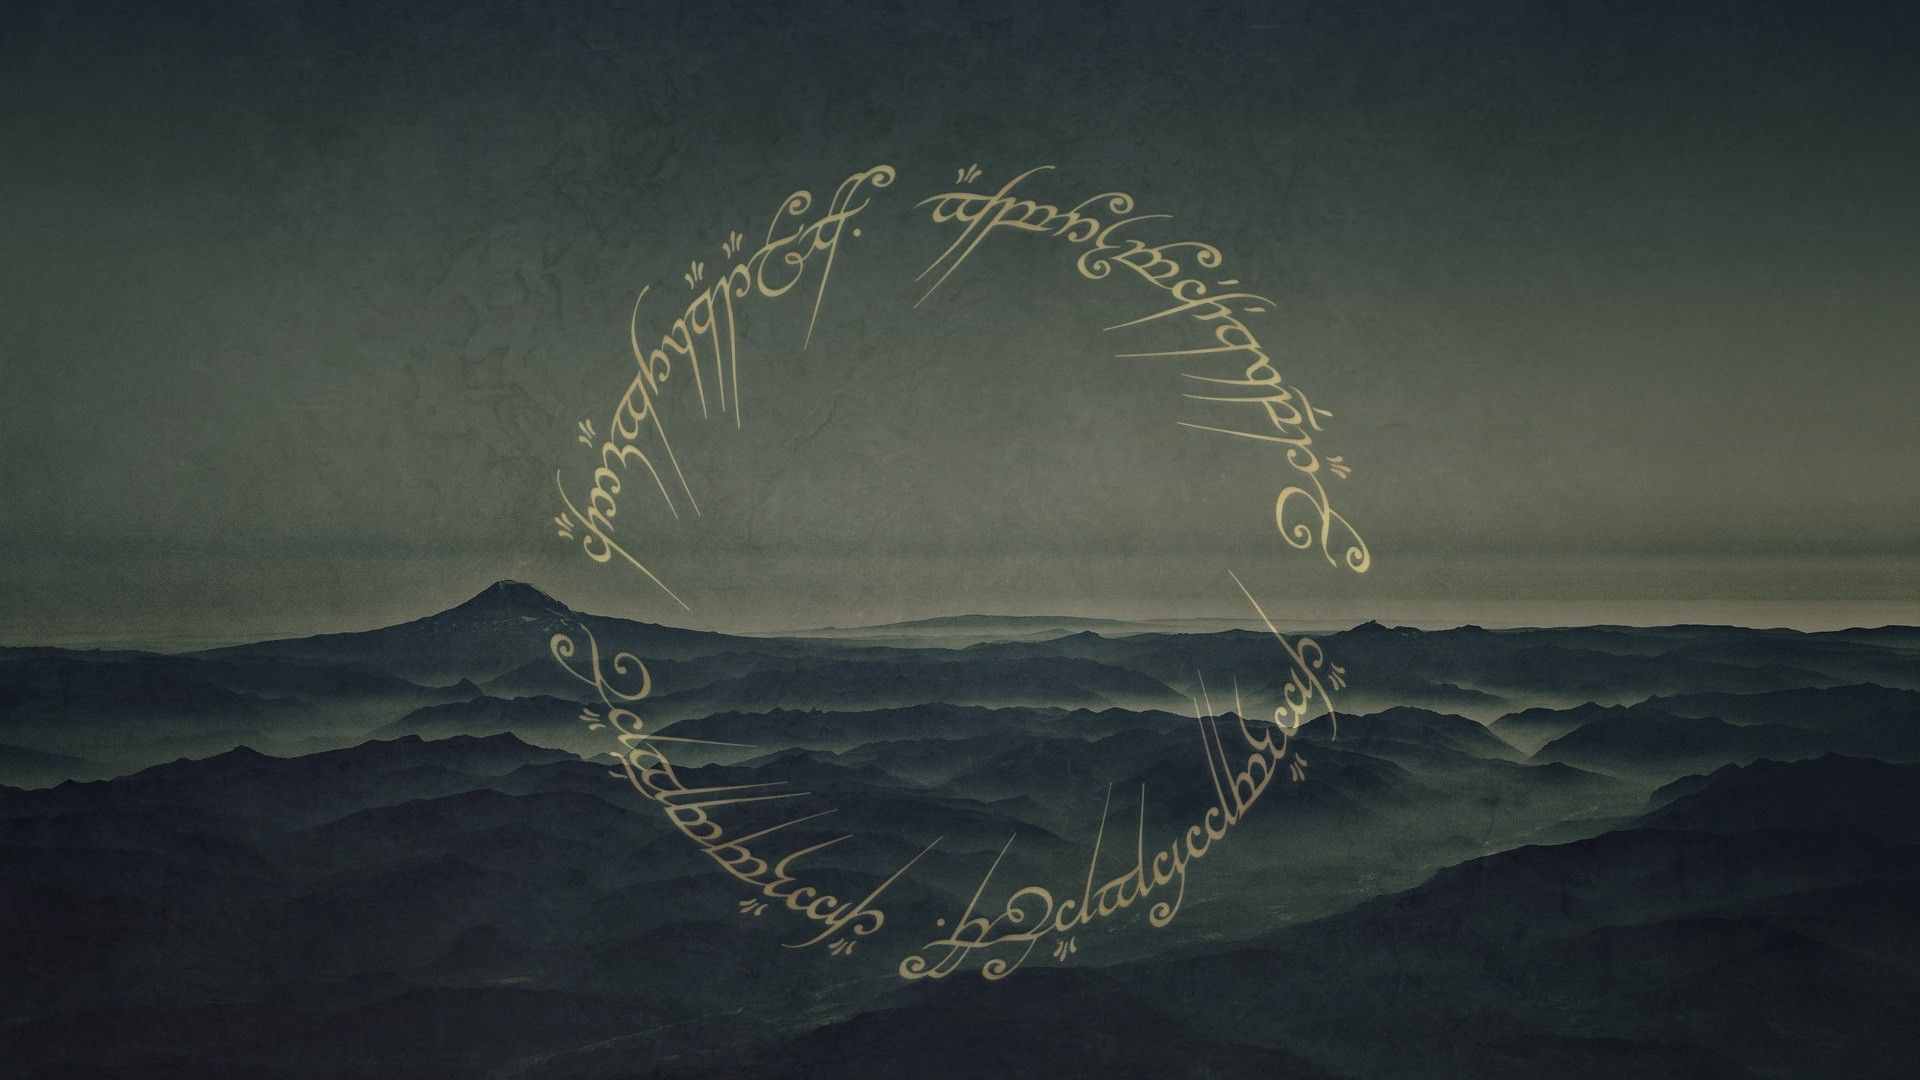 26 Awesome Lord of the Rings Wallpapers | 8 Bit Nerds